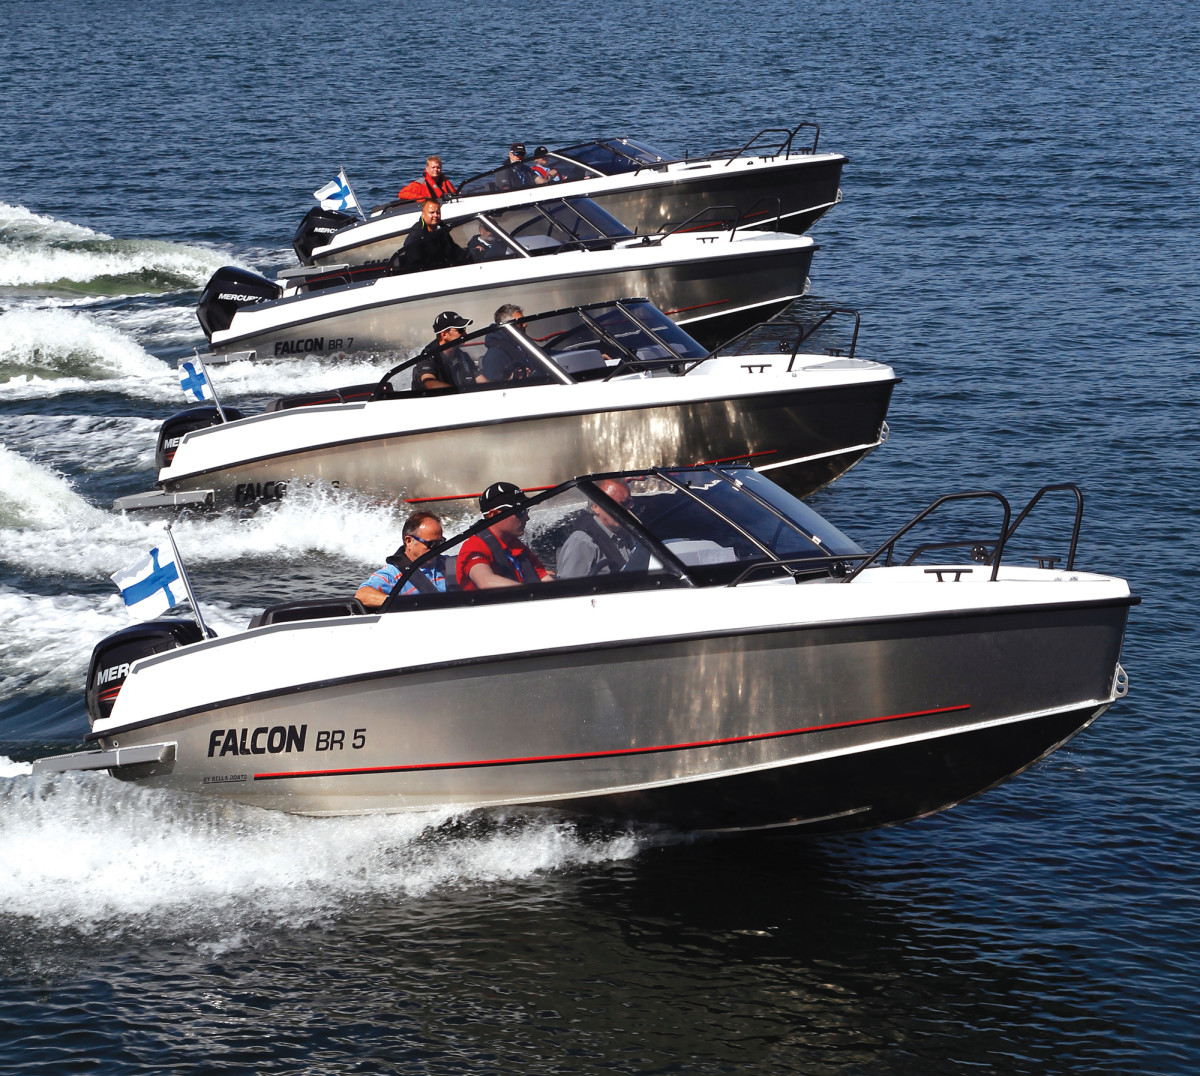 Falcon's line of bowriders typify Finland's family-friendly aluminum boat builders.